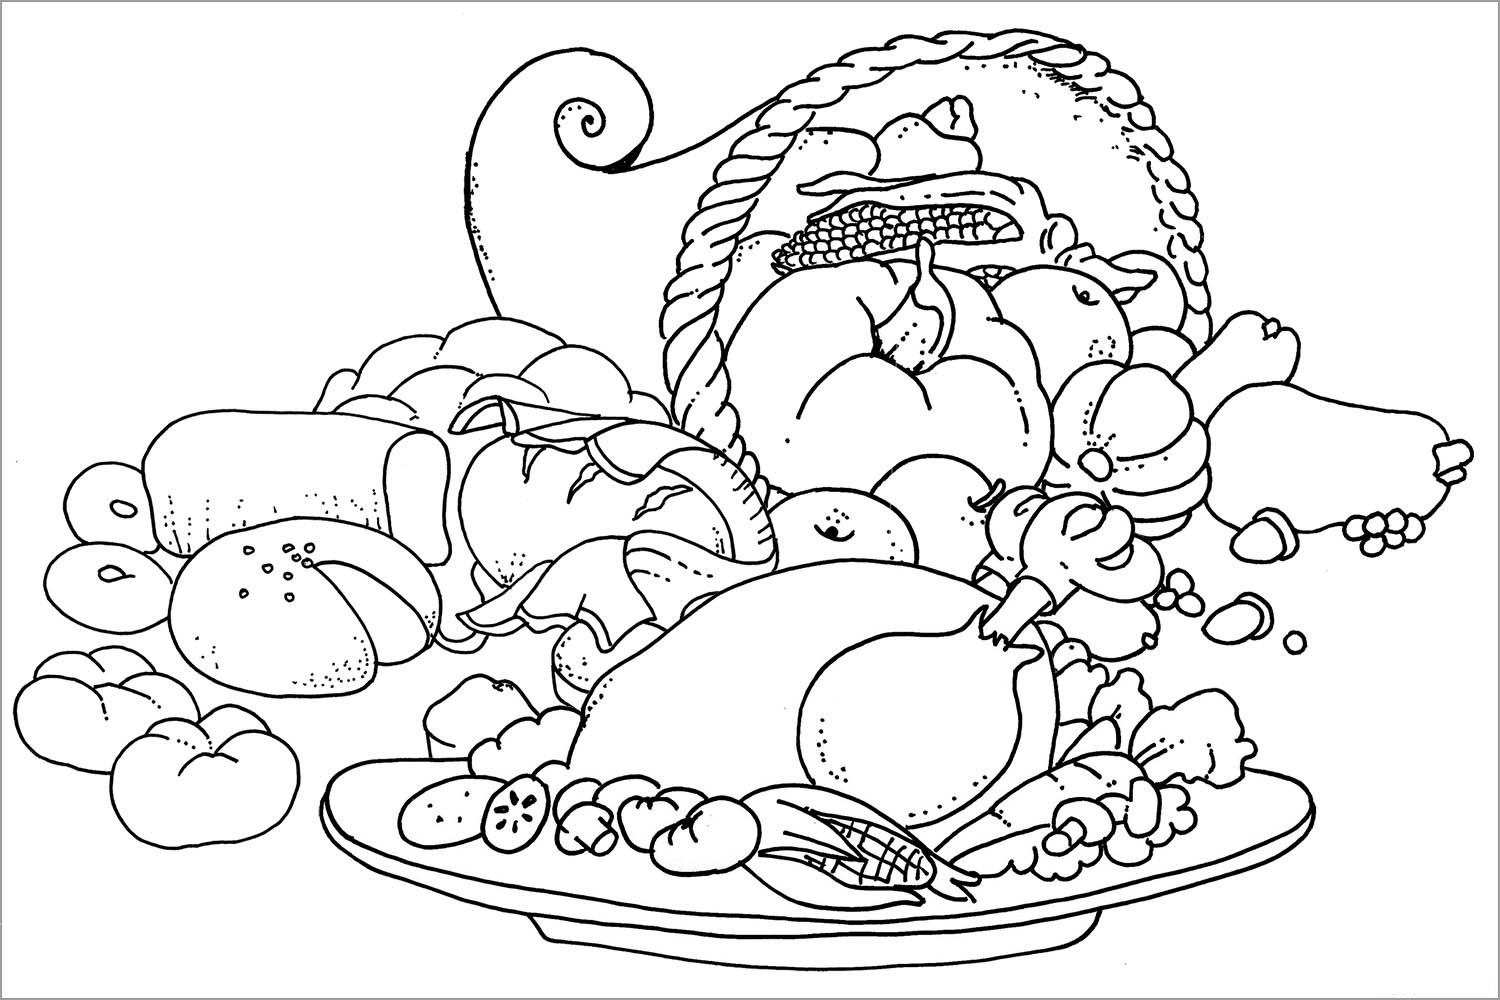 hanksgiving coloring pages - photo#24